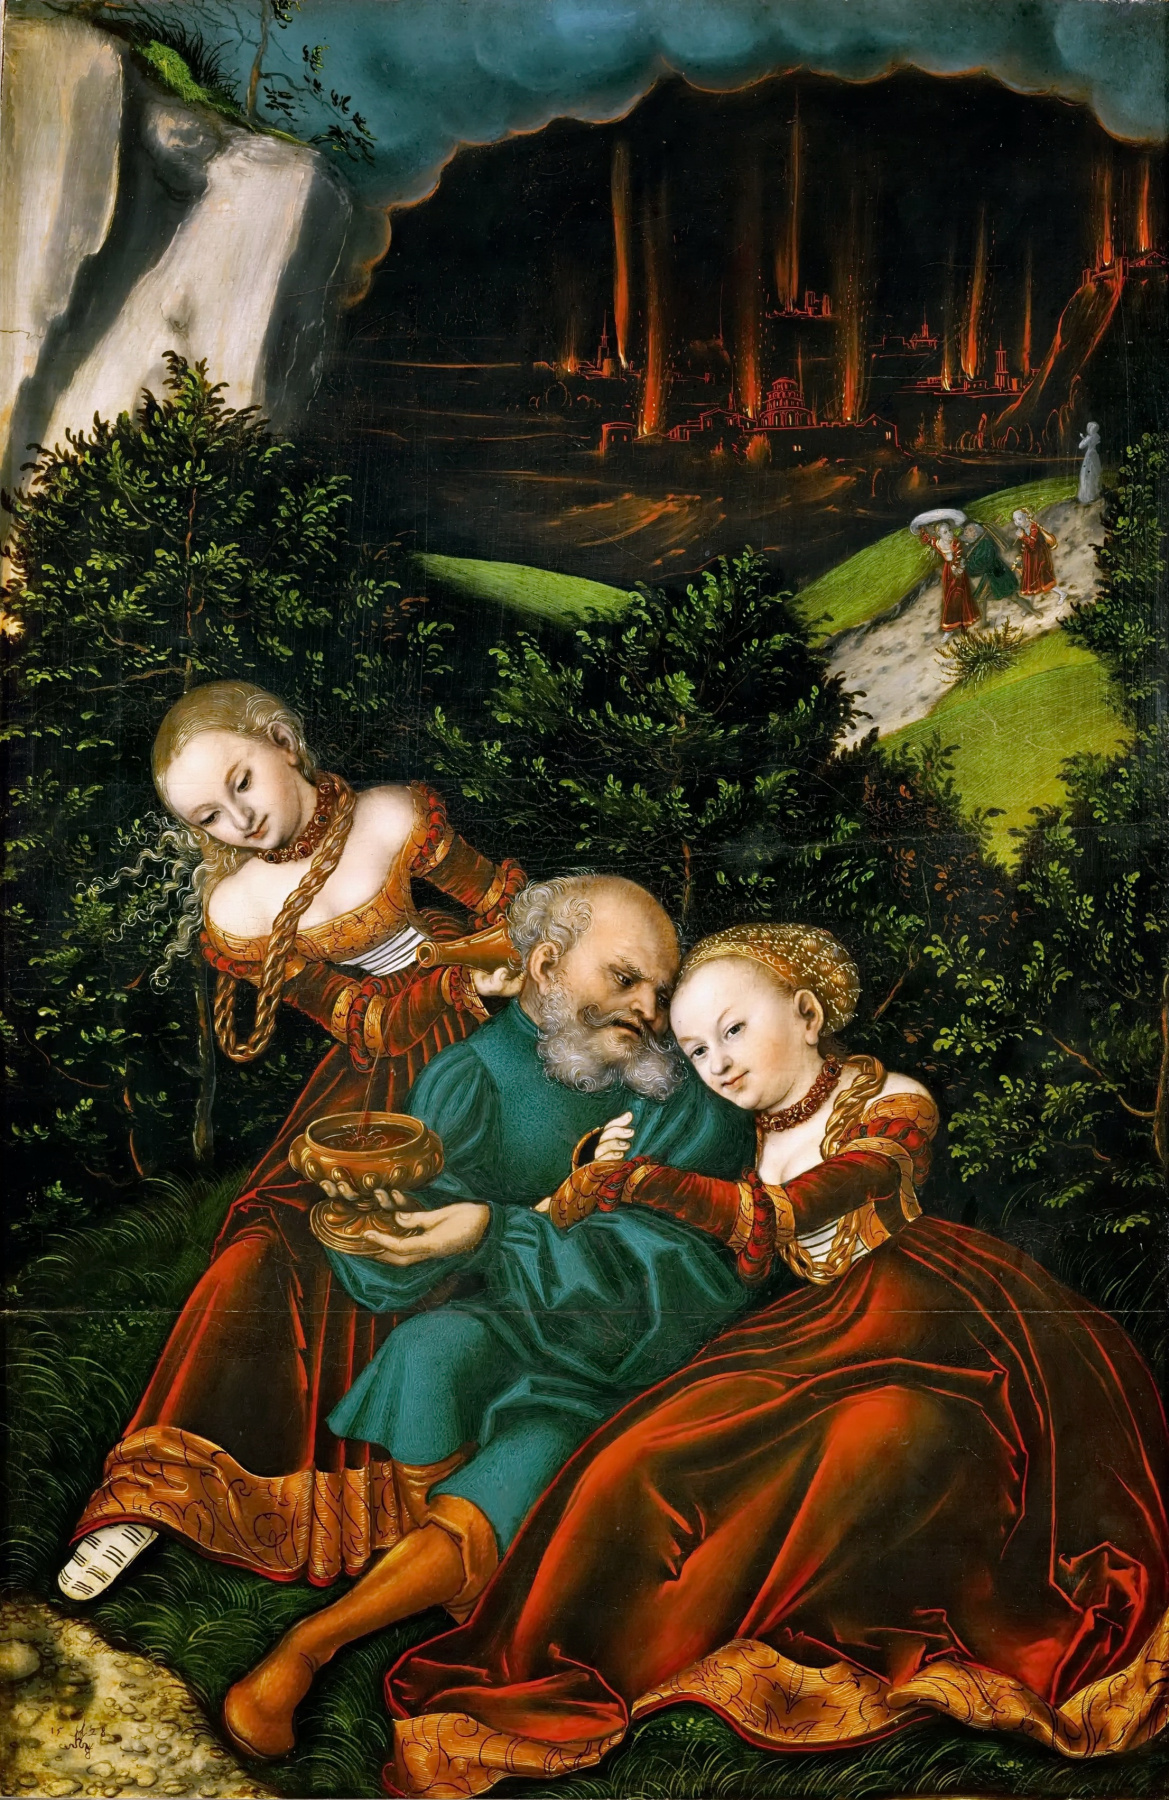 Lucas Cranach the Elder. Lot with his daughters